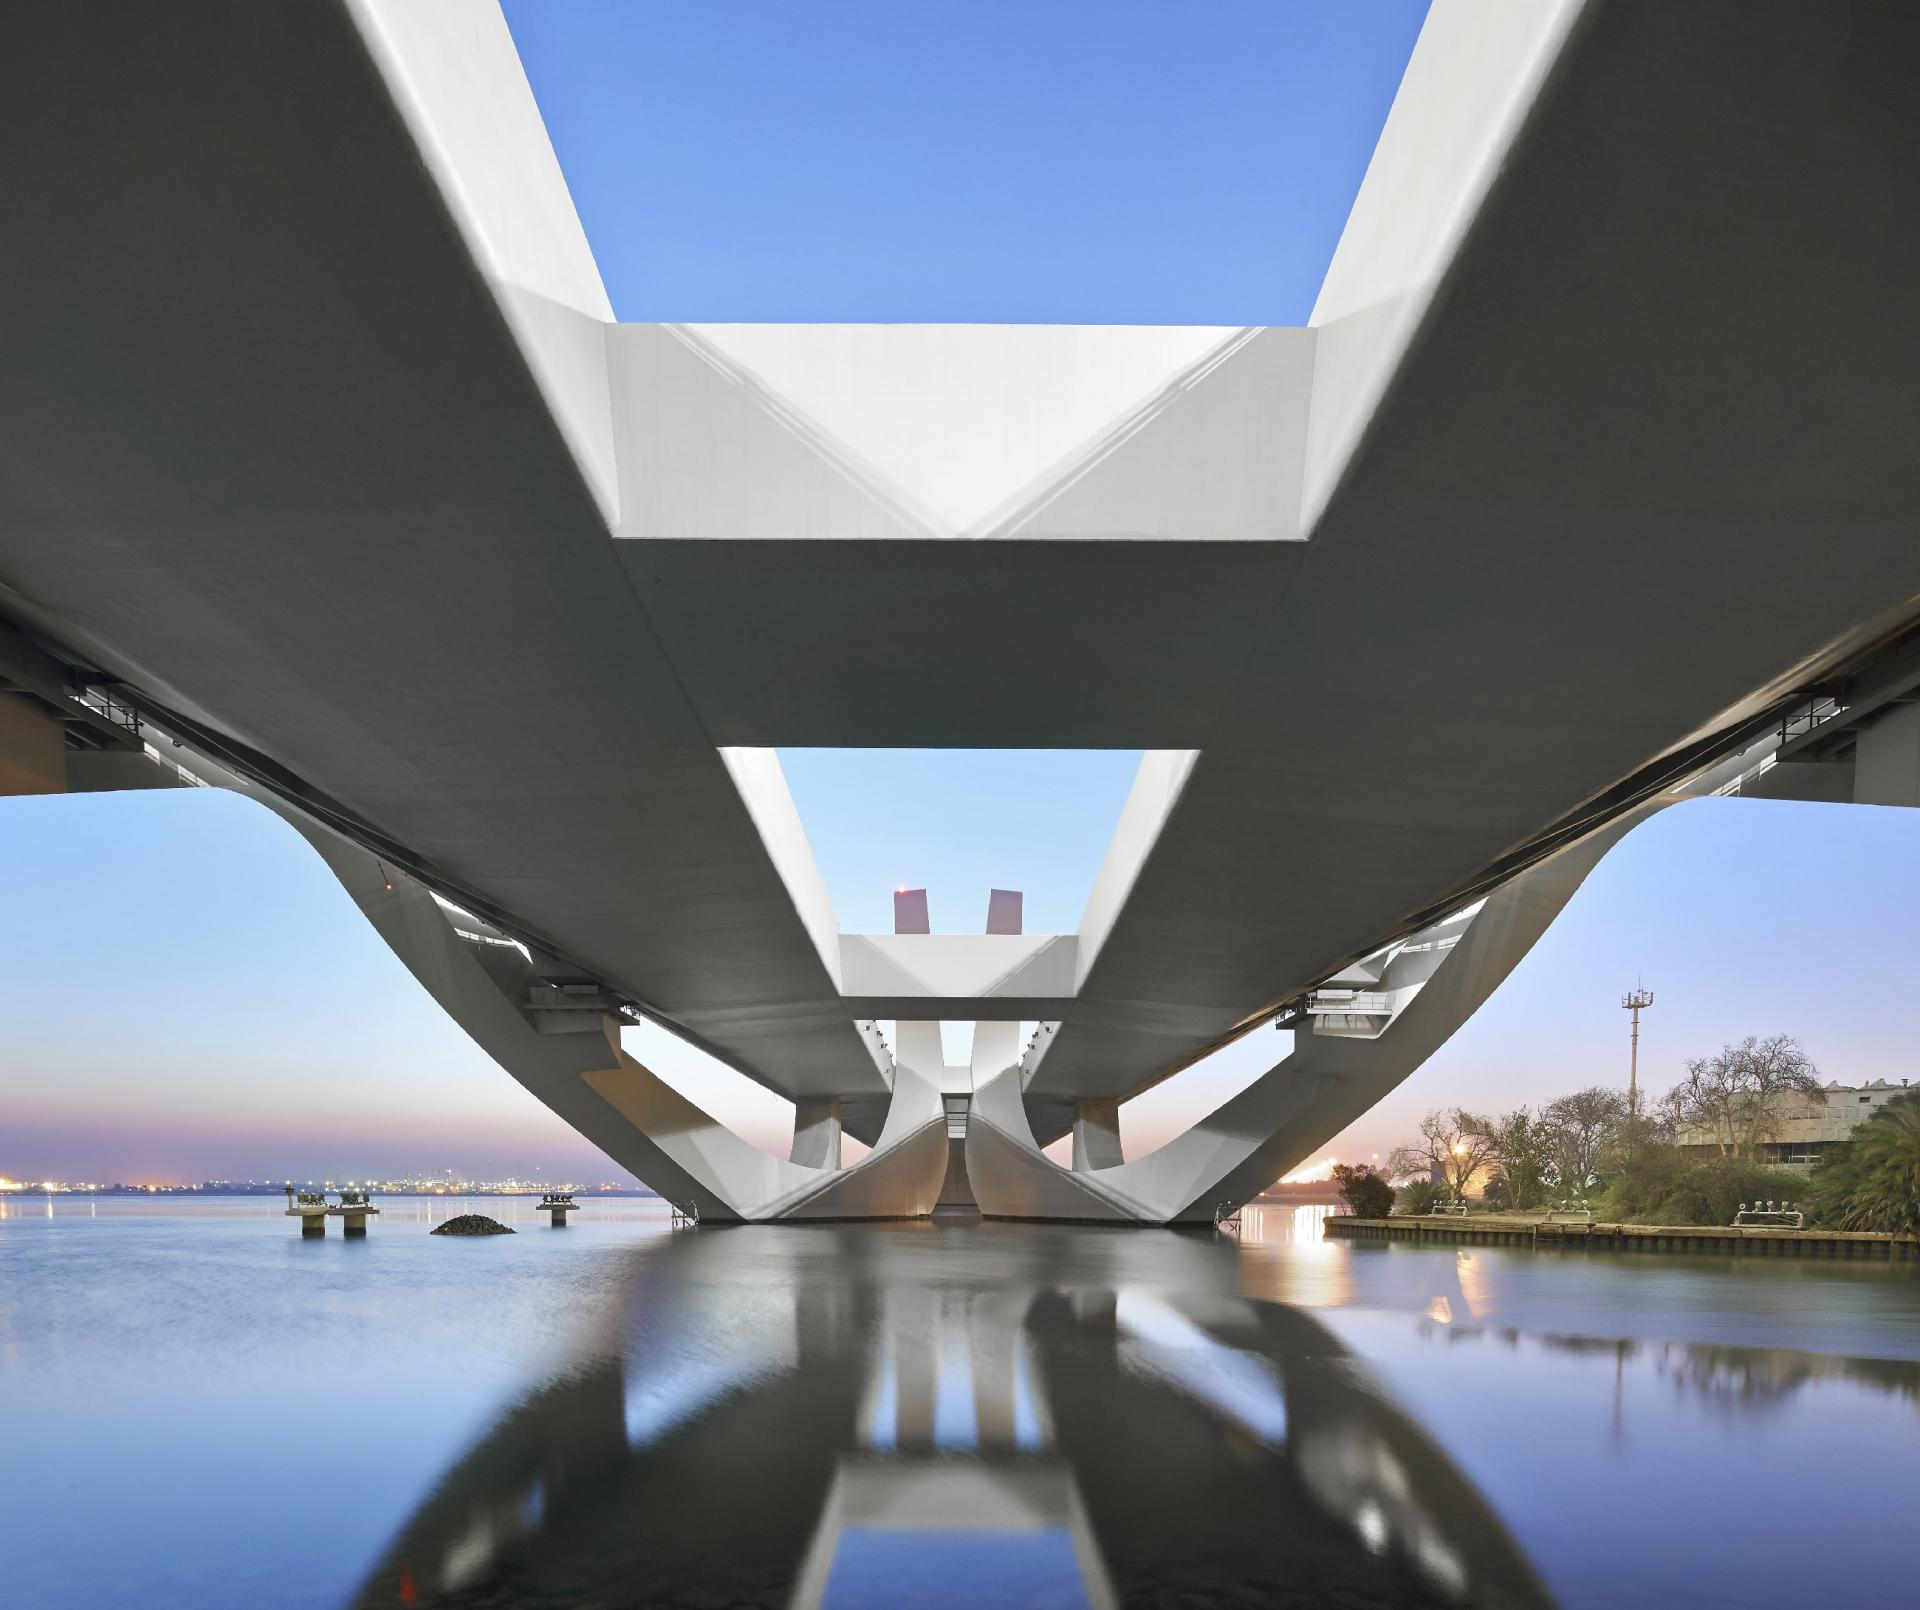 Sheikh Zayed Bridge Construction and Architecture by Zaha Hadid_ (4)